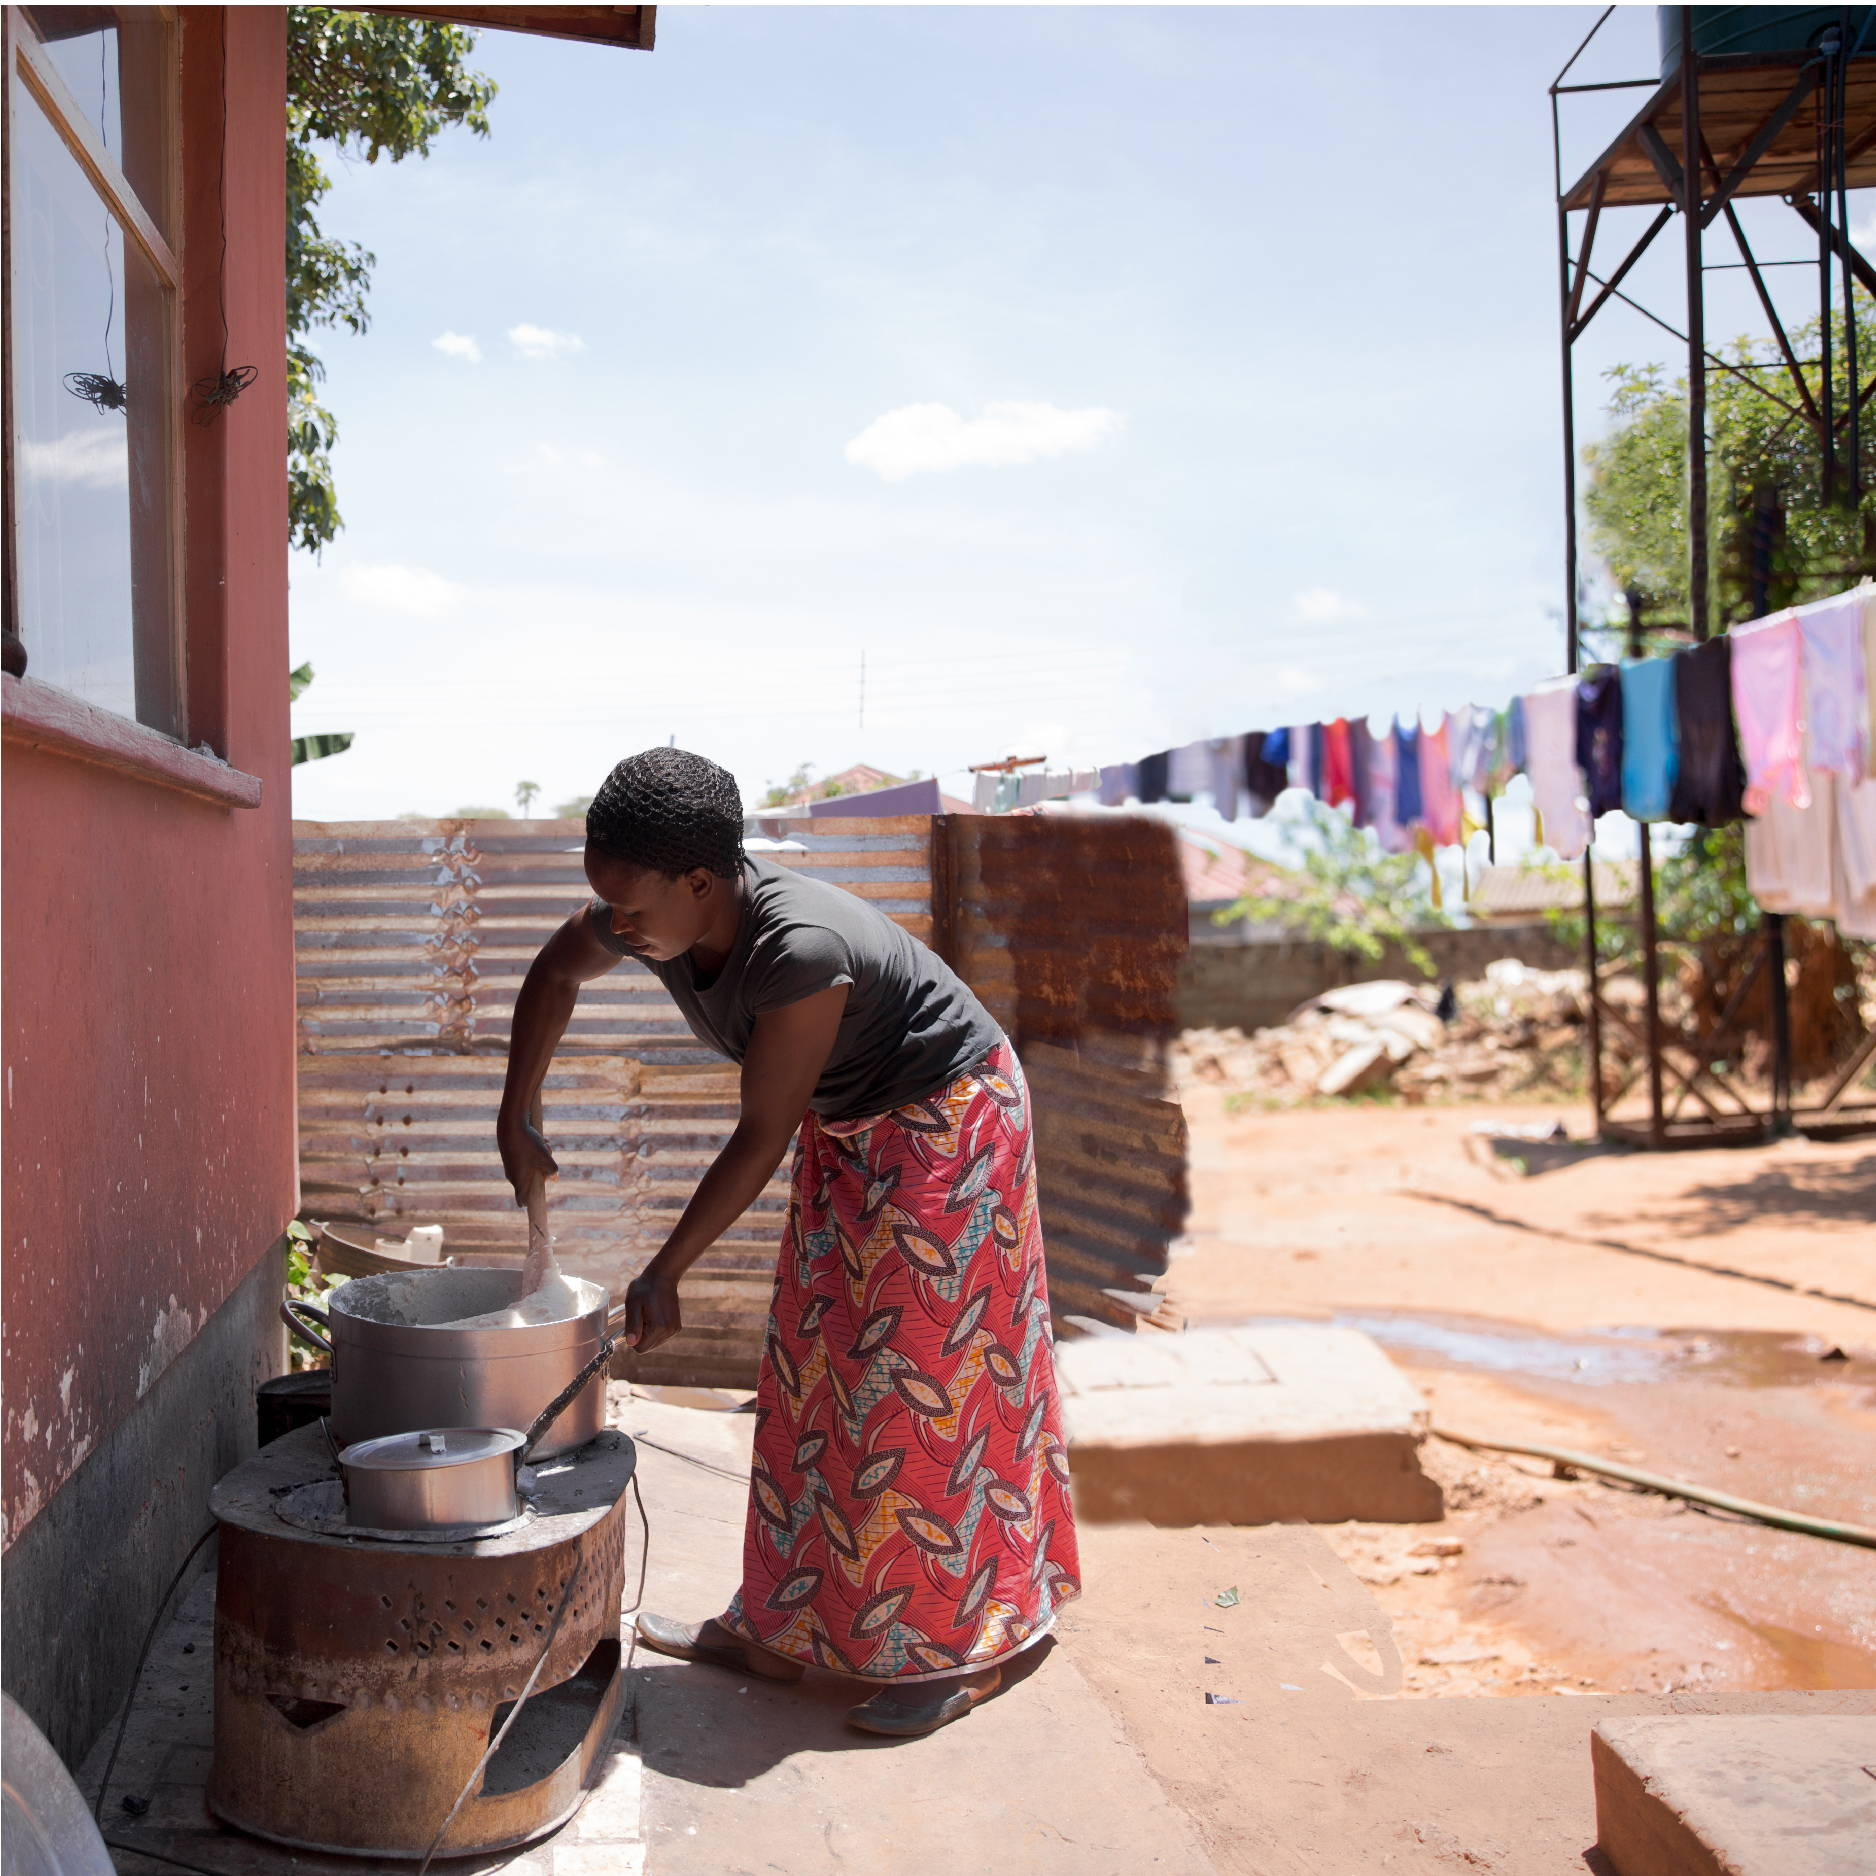 A Zambian woman stands outside cooking and stirring a large pot of nshima for small children.